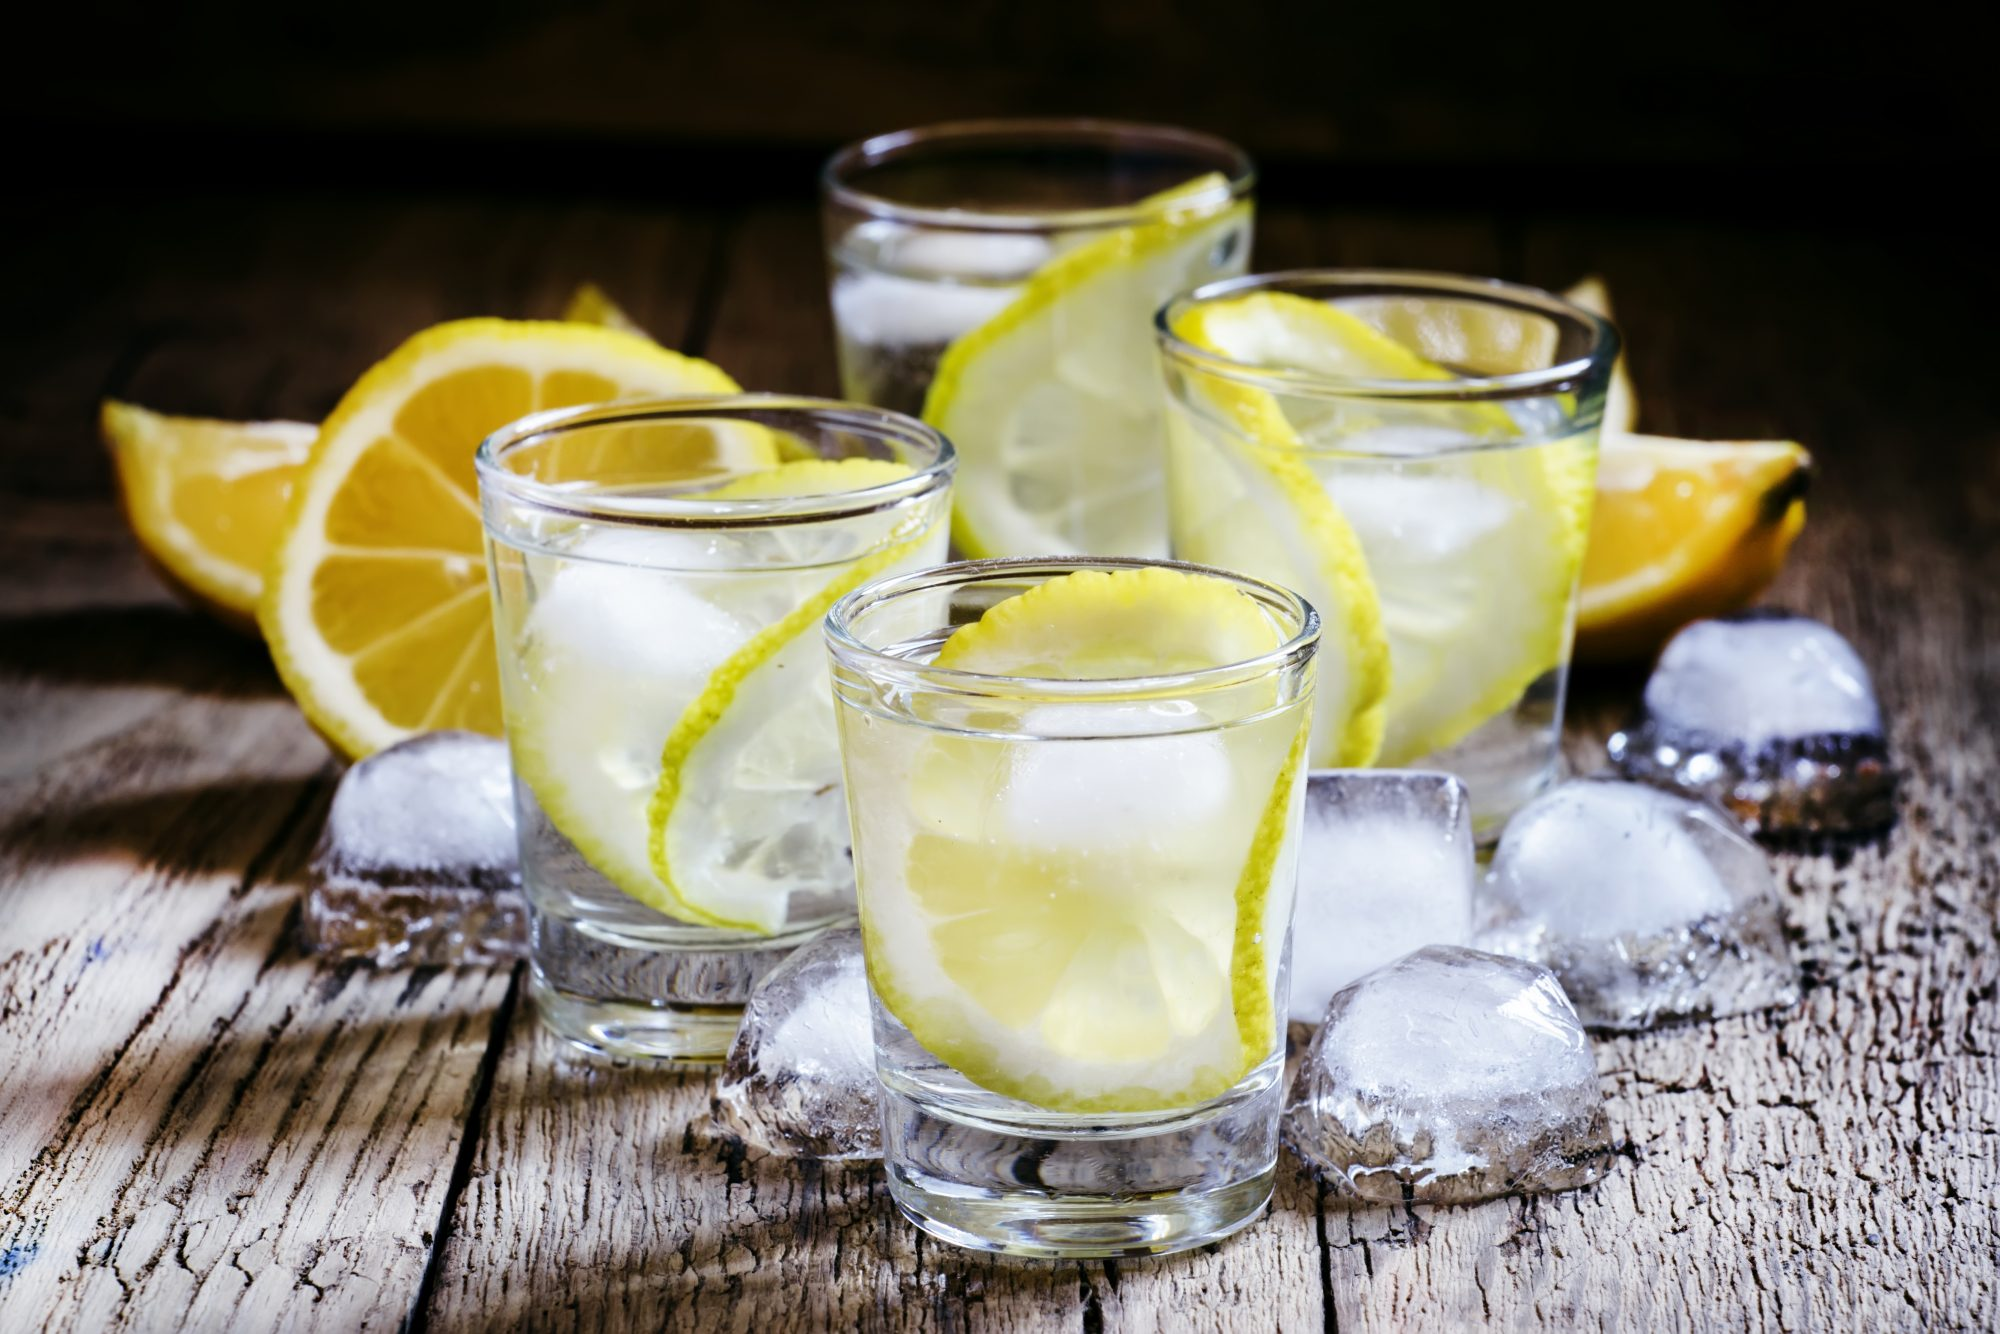 Cold Russian vodka with lemon and ice in shot glass